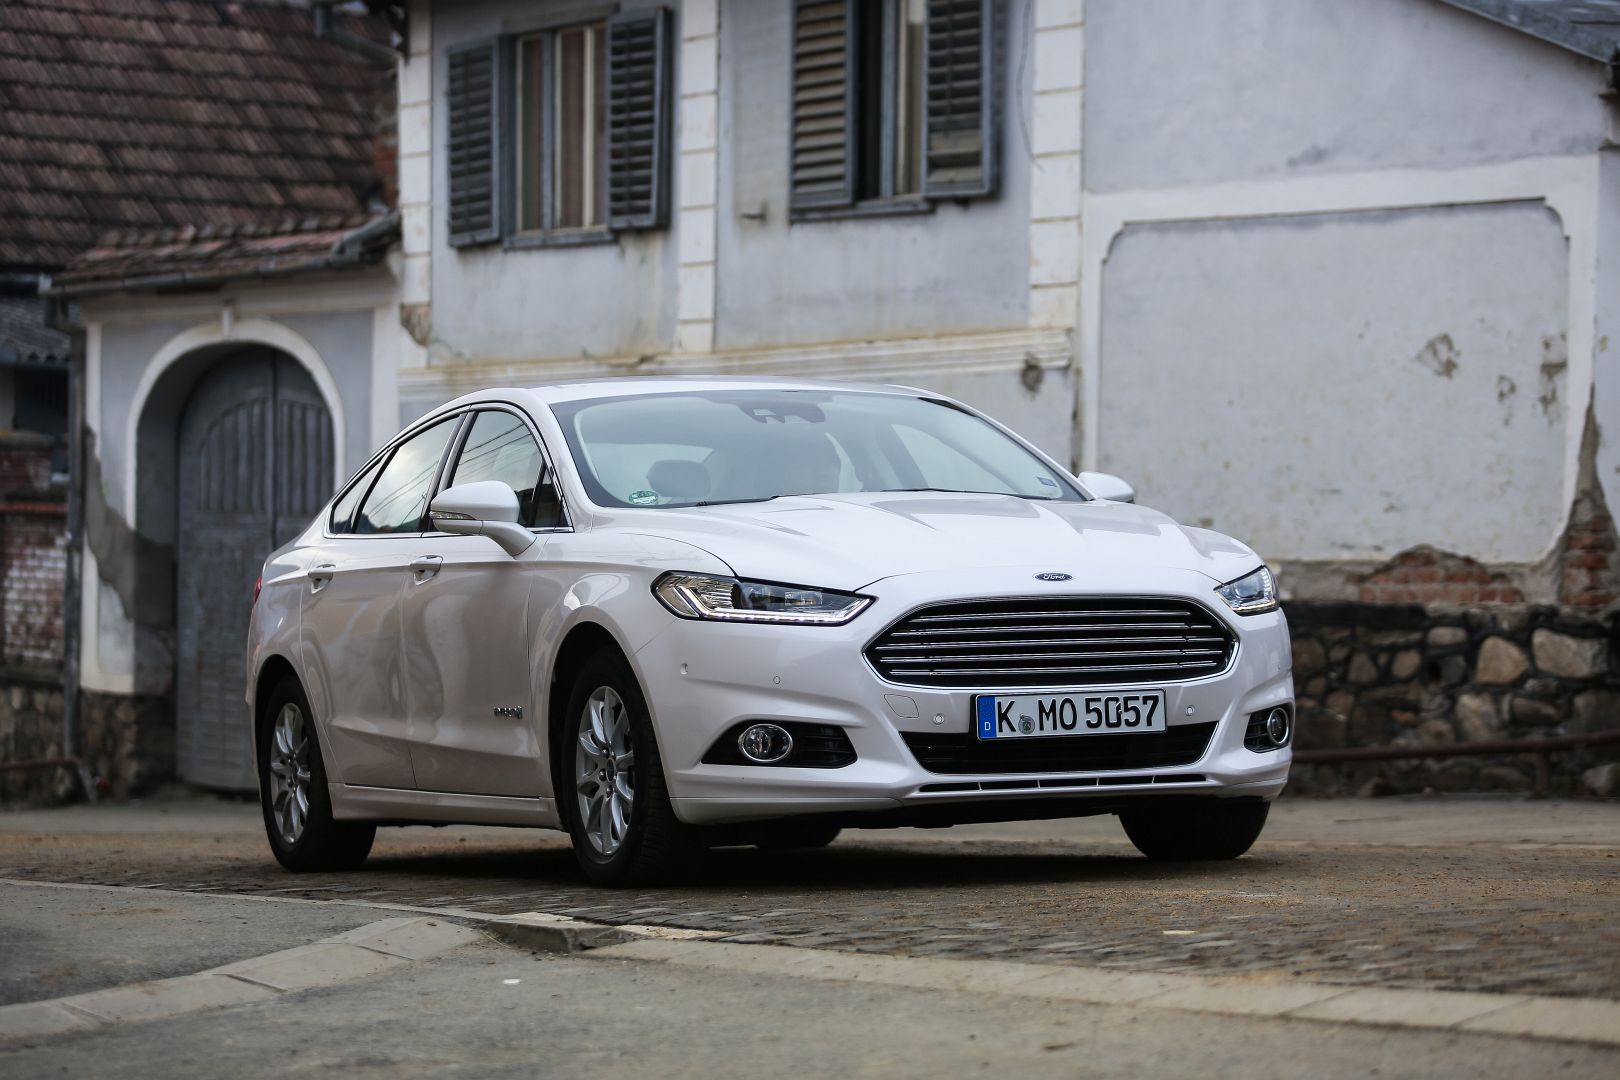 2015 ford mondeo tested edging into vw passat territory autoevolution. Black Bedroom Furniture Sets. Home Design Ideas